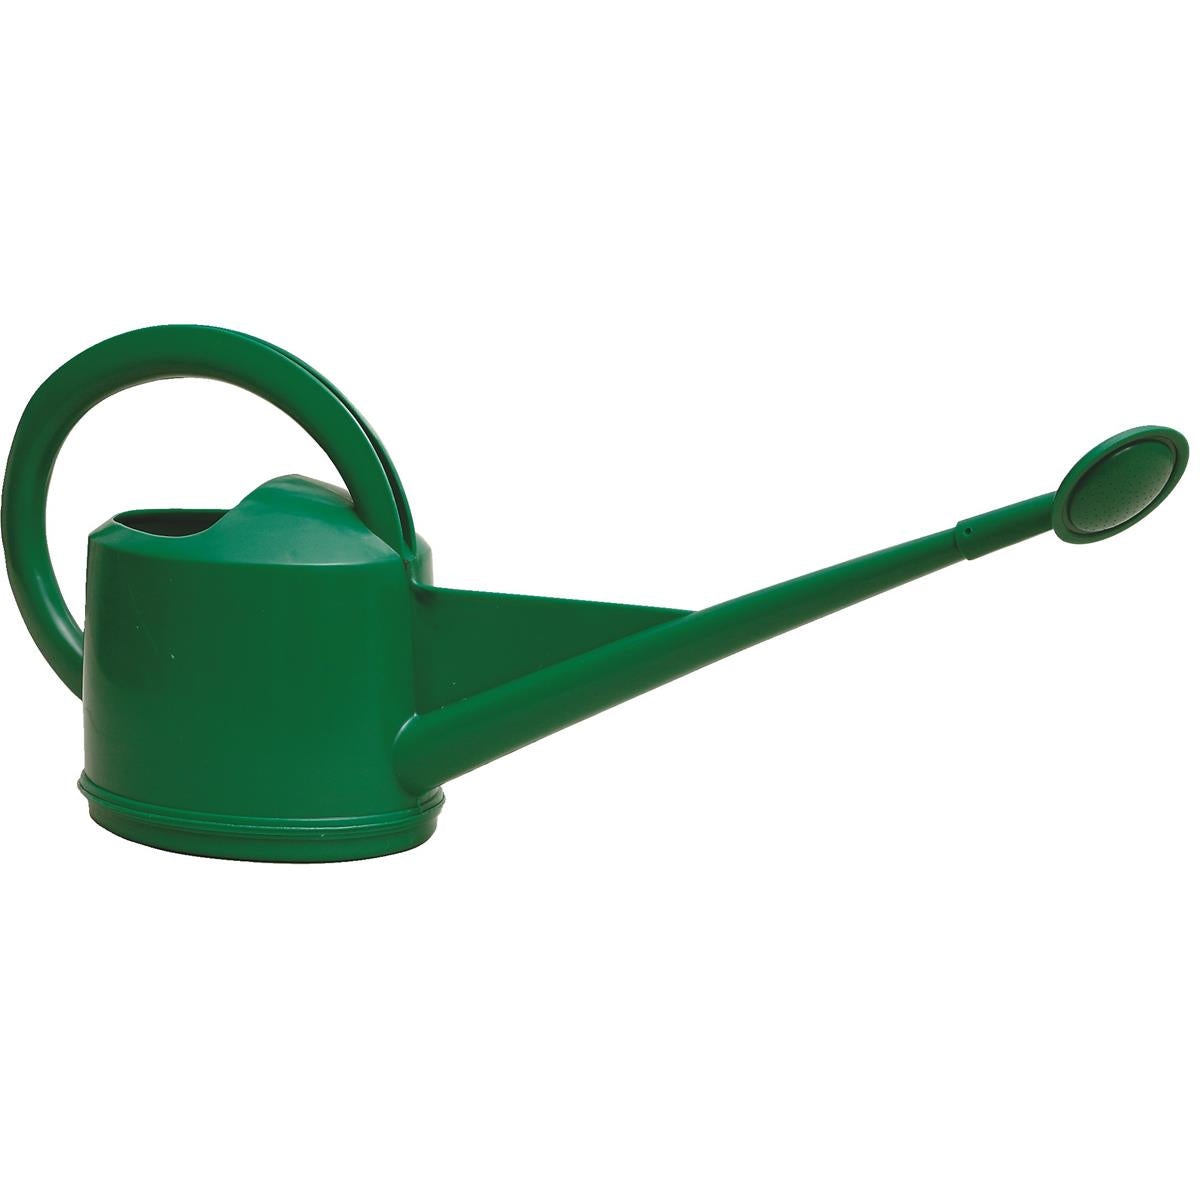 1-1/3 Gal. Heavy-Duty Plastic Watering Can with Plastic Rose Spout